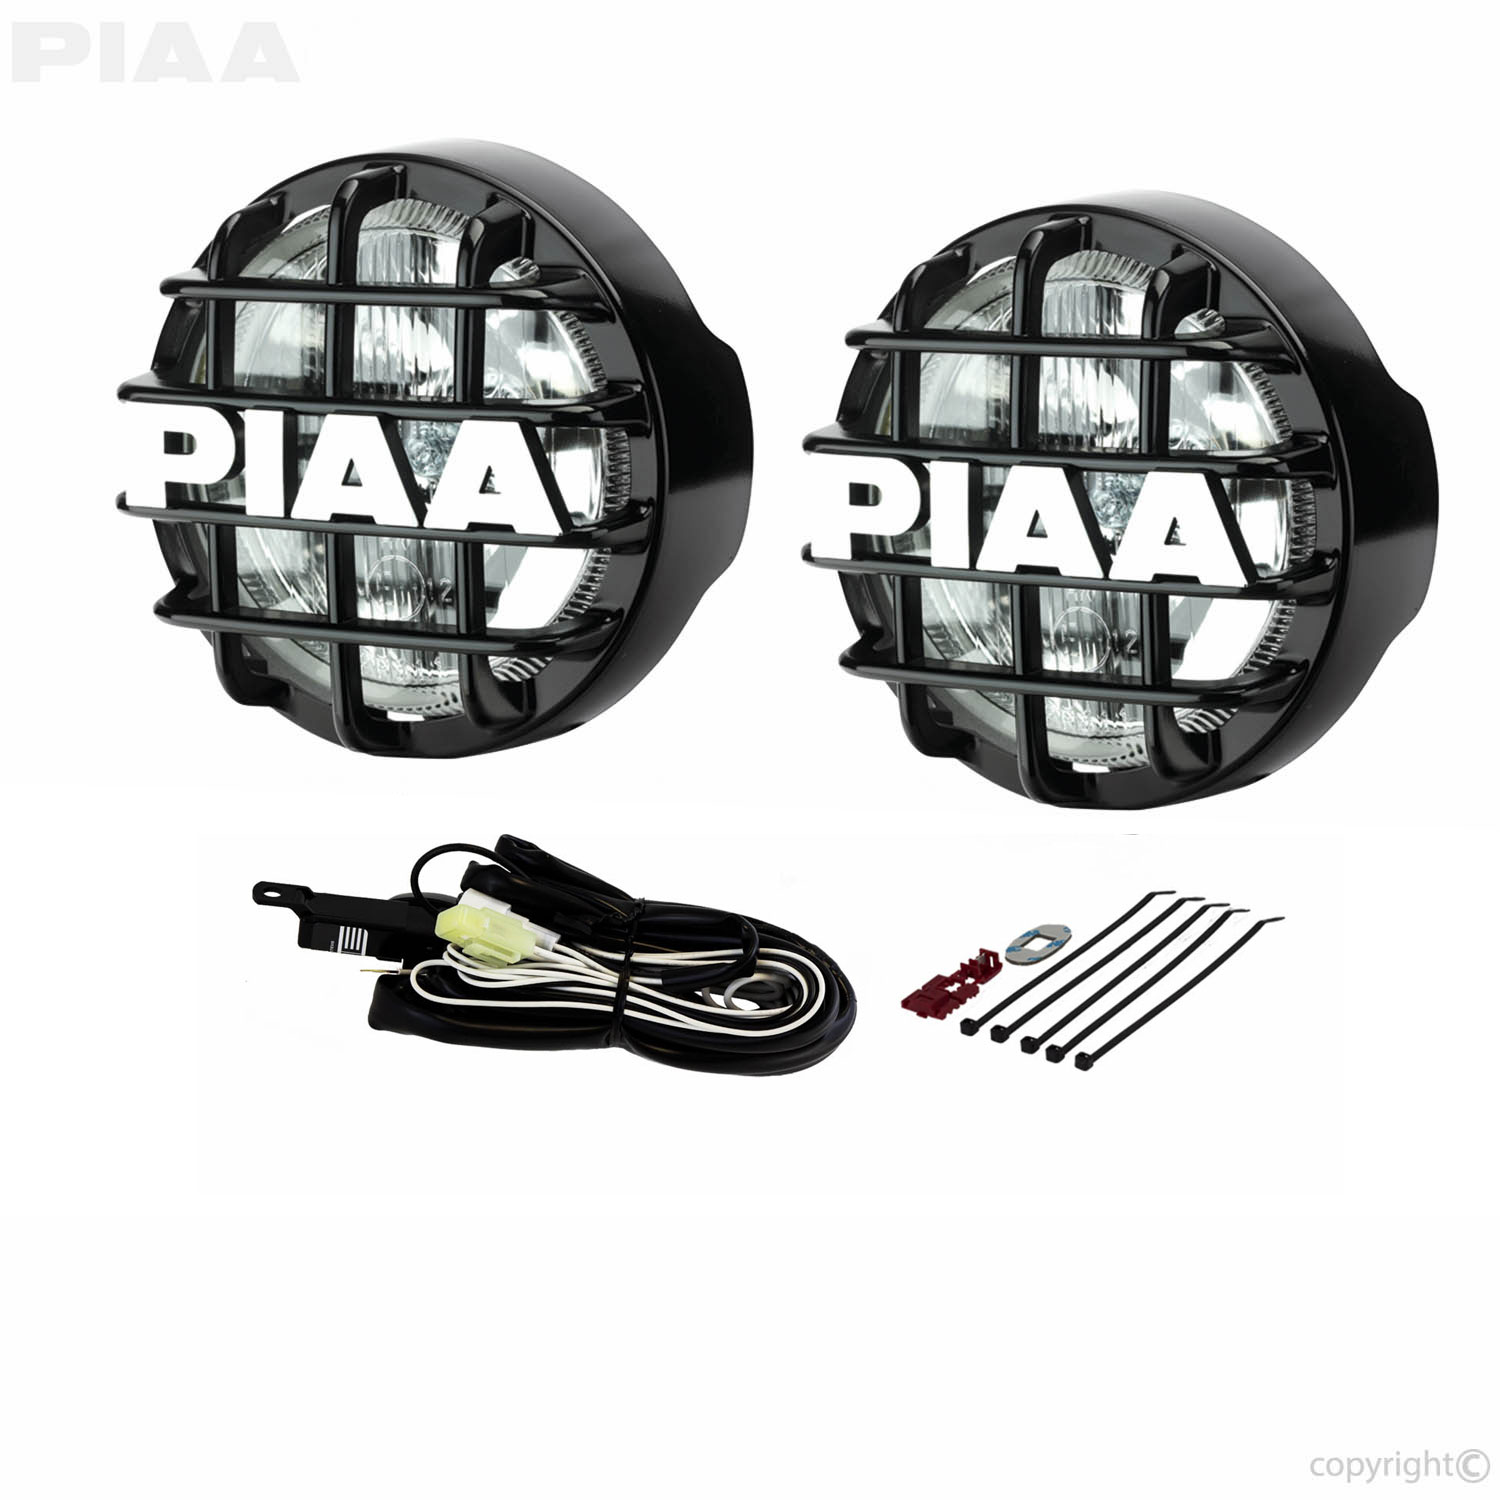 Piaa 520 Wiring Diagram 23 Images Diagrams Multiple Aux Lights To One Switchwiringdiagram4litesjpg 510 Super White Driving Lamp Kit 05164 Contents Hrbw1000w1000bh1000h1000